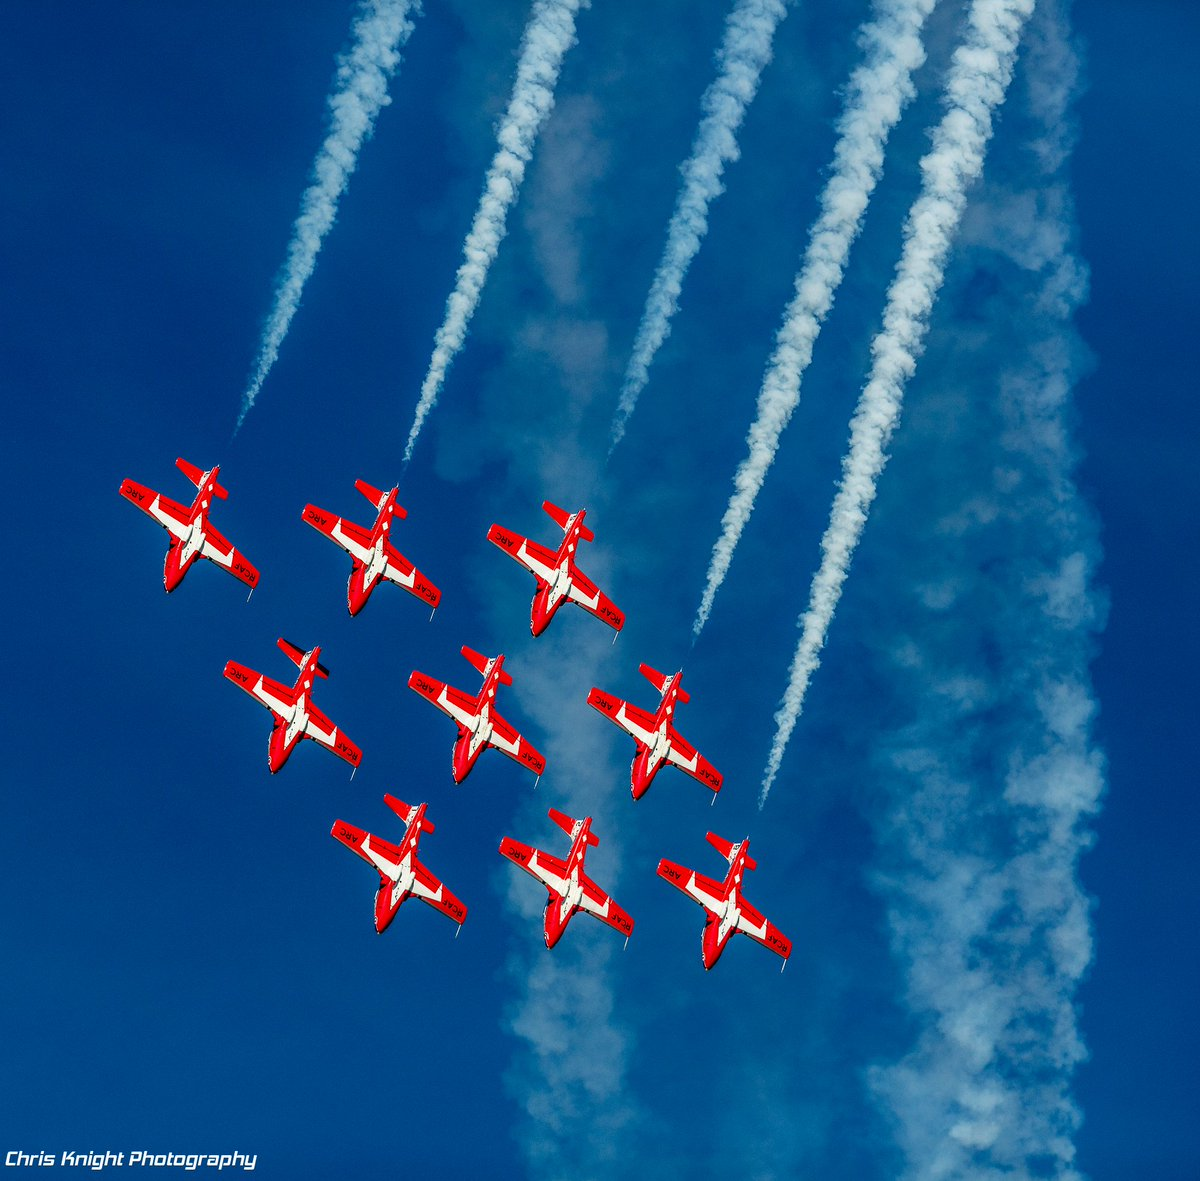 The #CFSnowbirds @CanadianForces were awesome! ...Flying in formation at @EAA #AirVenture #OSH16 https://t.co/xTxzJ3z6br